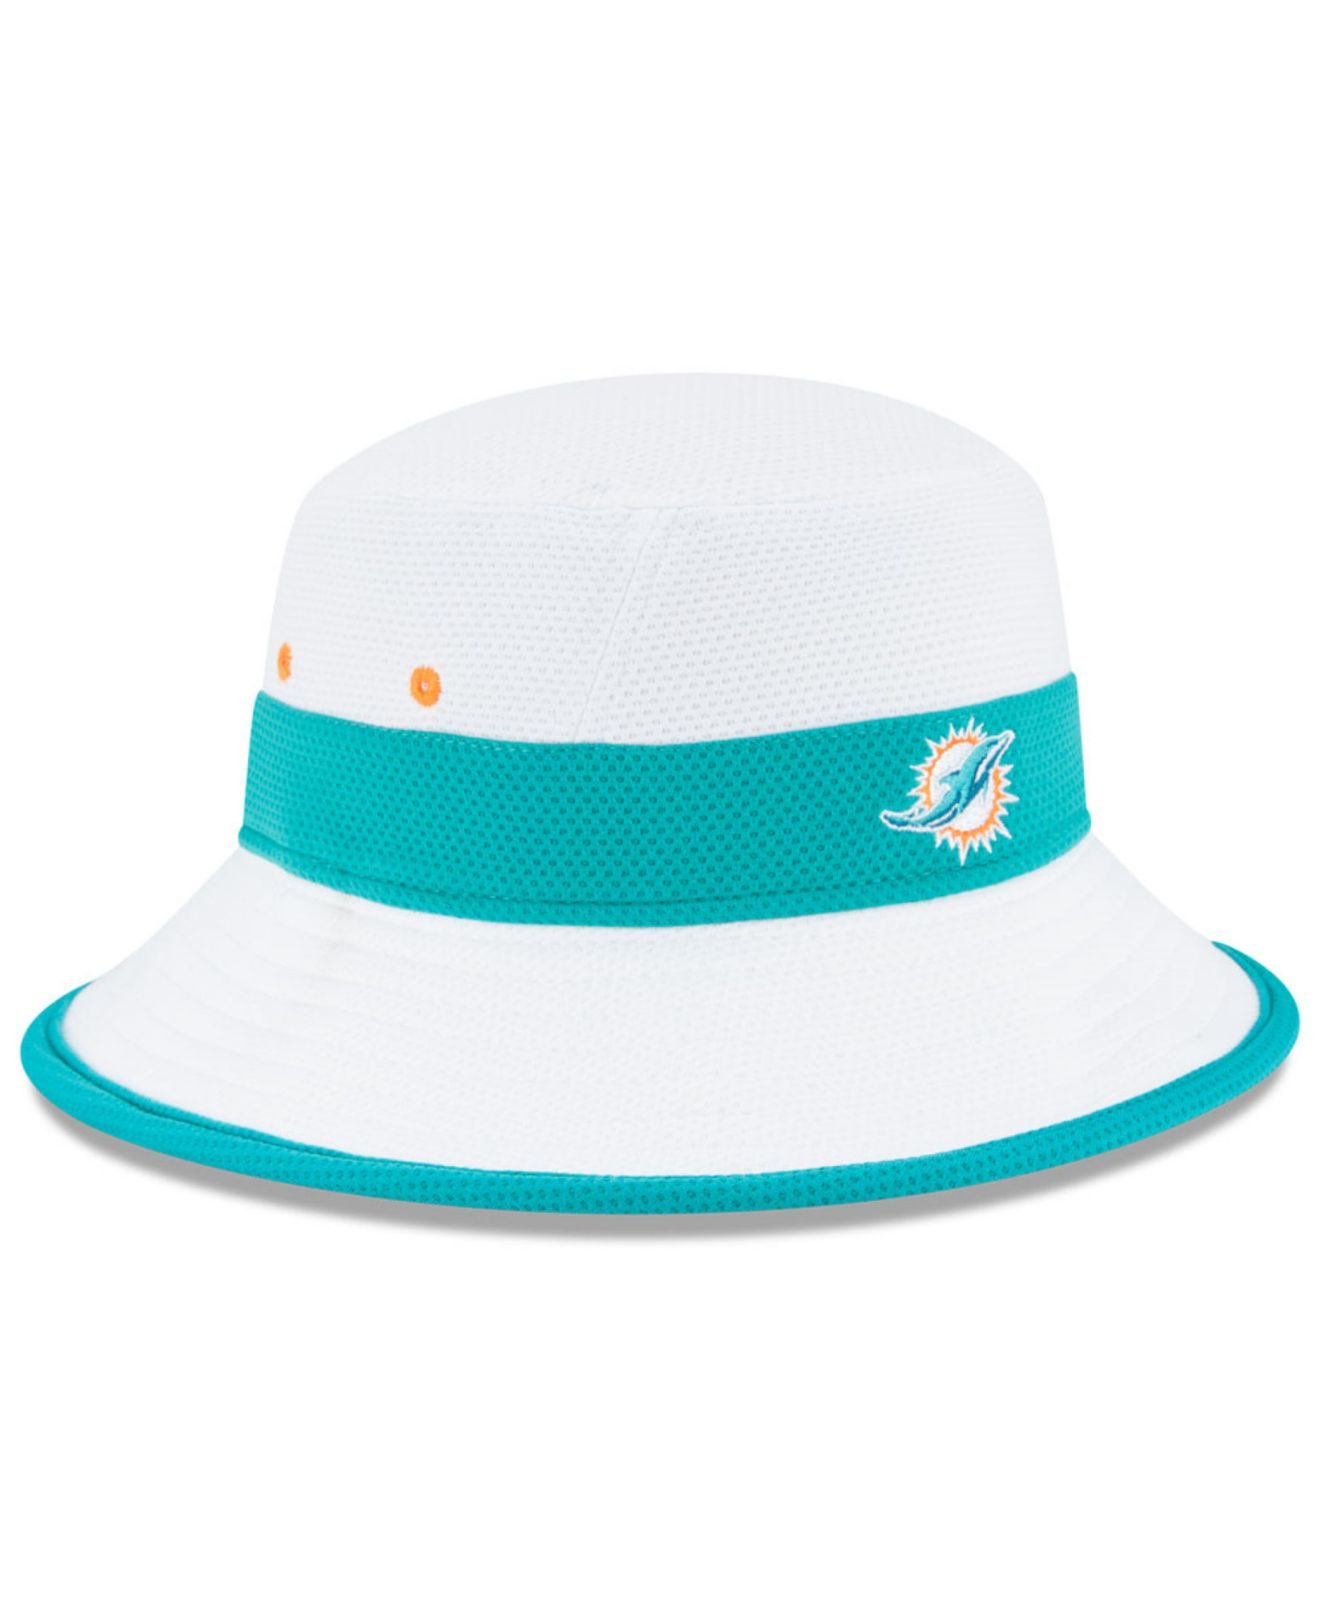 Lyst - KTZ Miami Dolphins Training Camp Official Bucket Hat in White ... bee7ab03ad3f